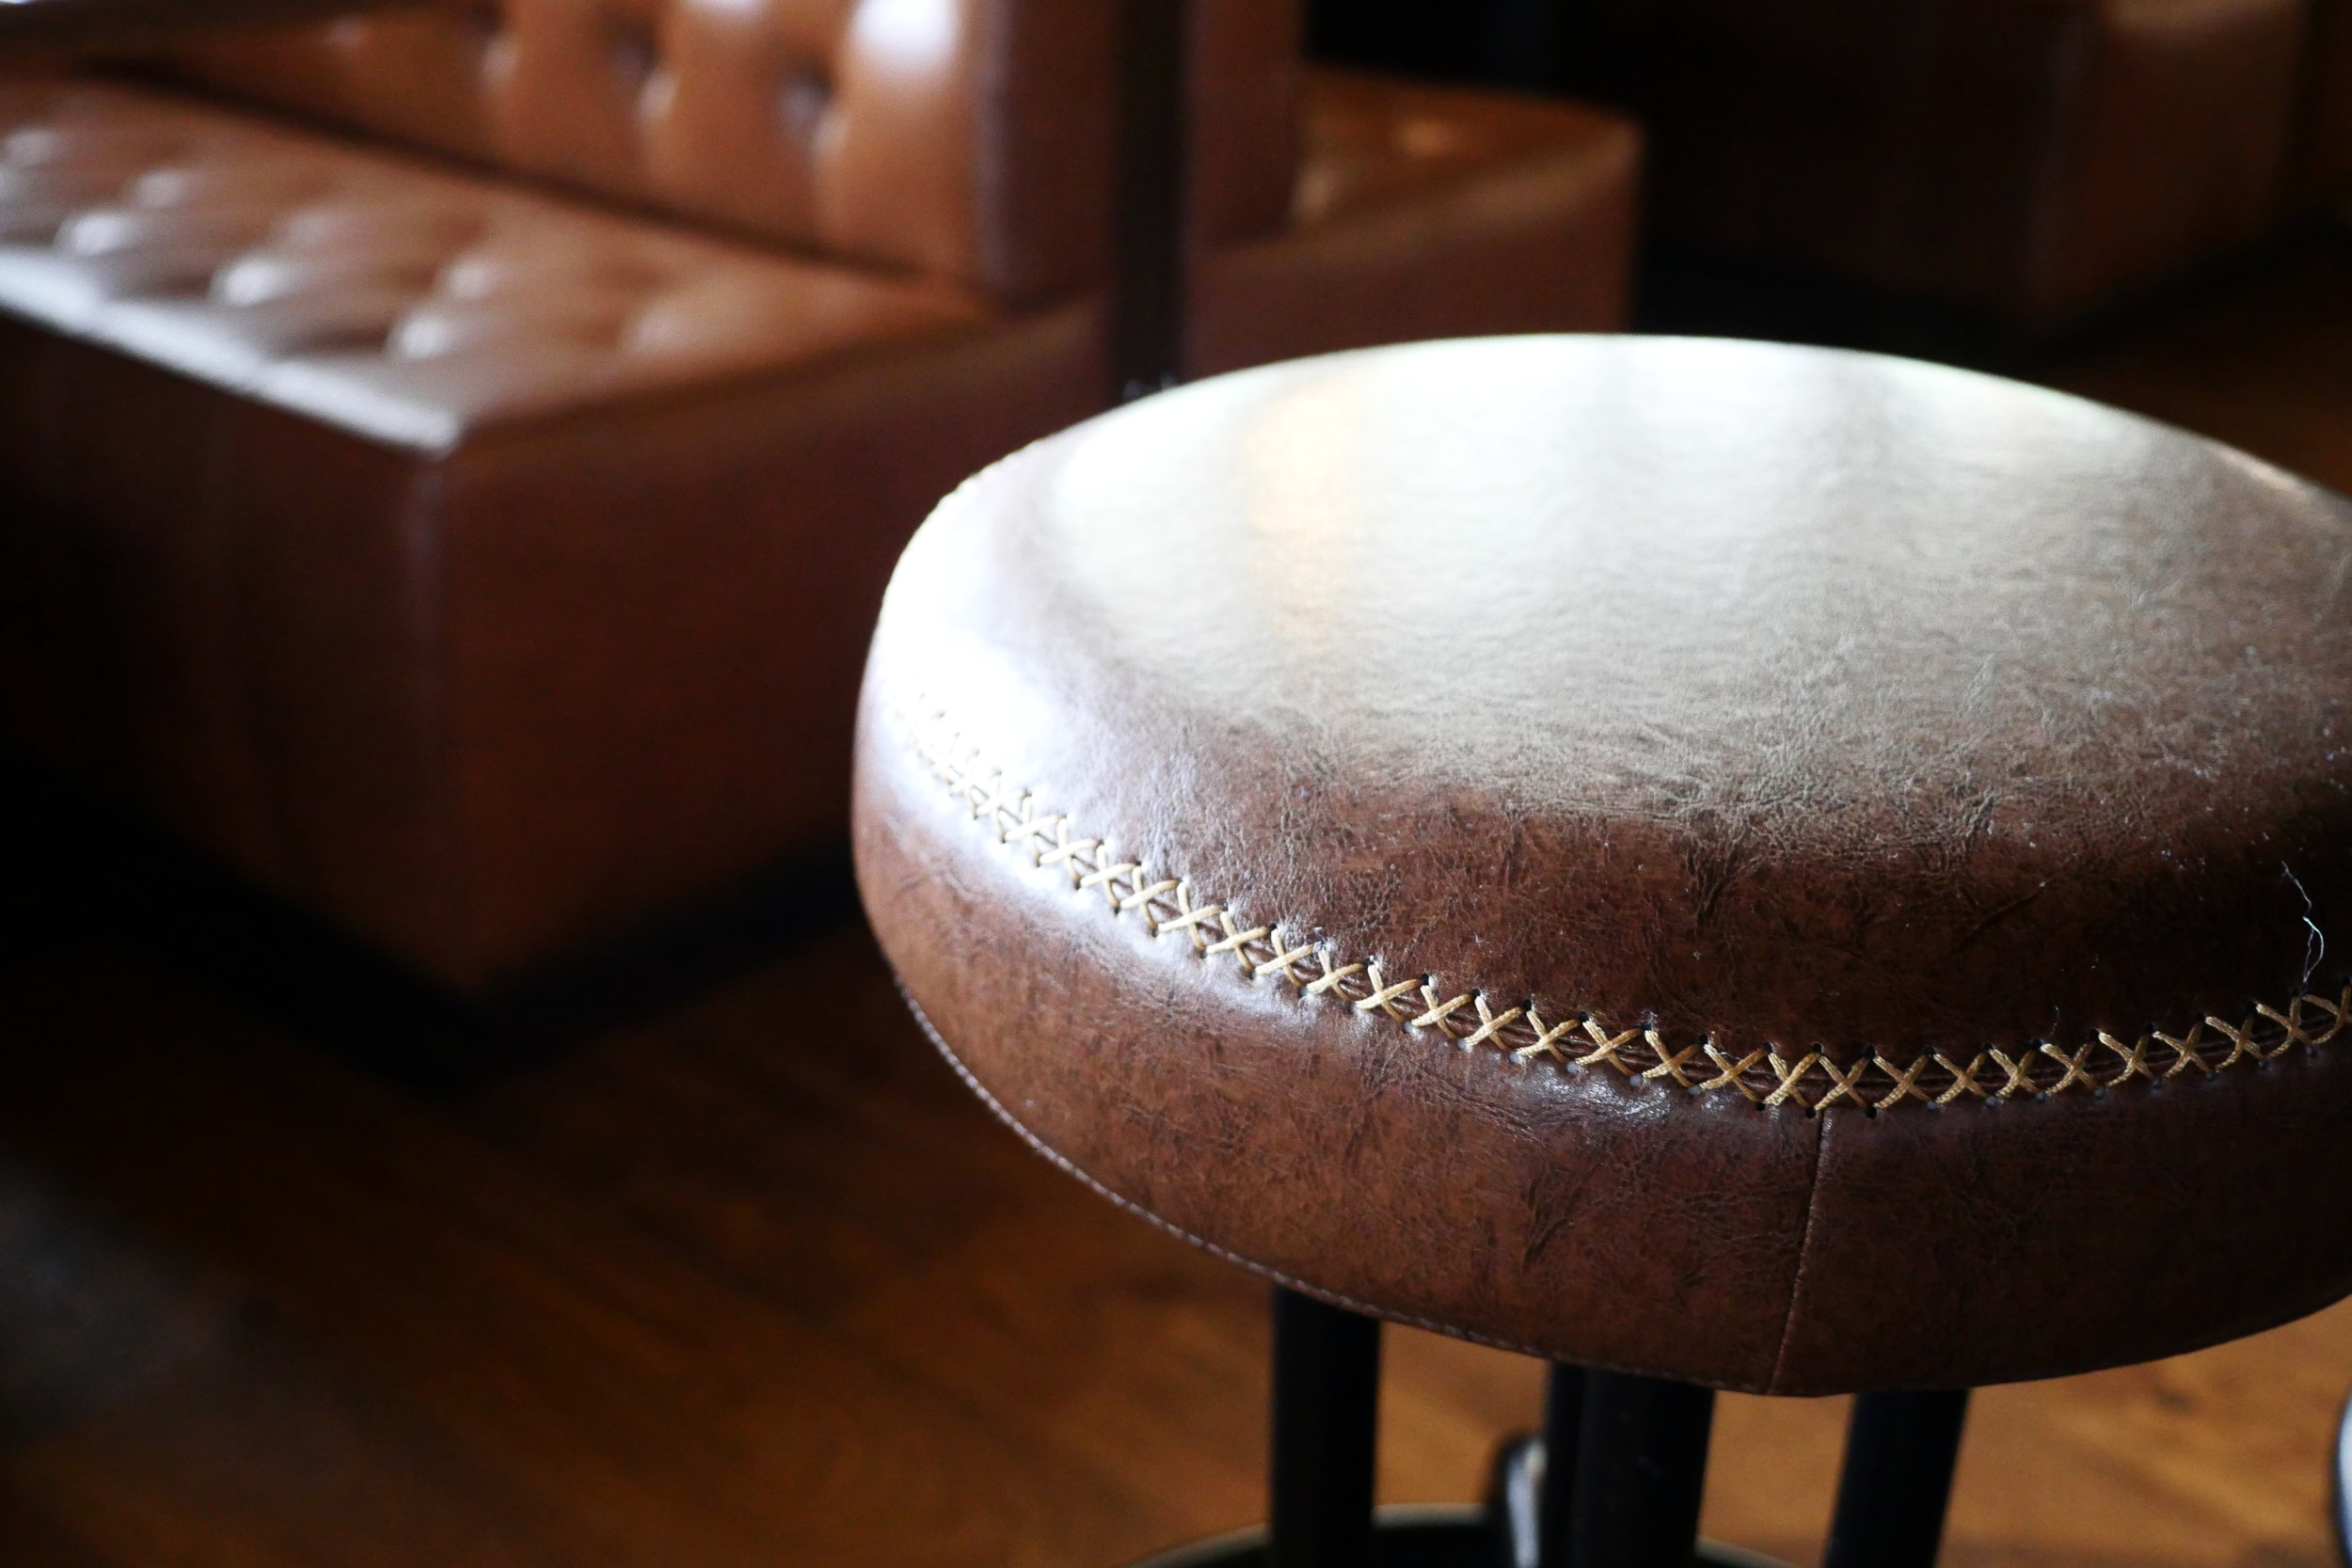 Bar stools by Nuevo feature stitching resembling football laces.